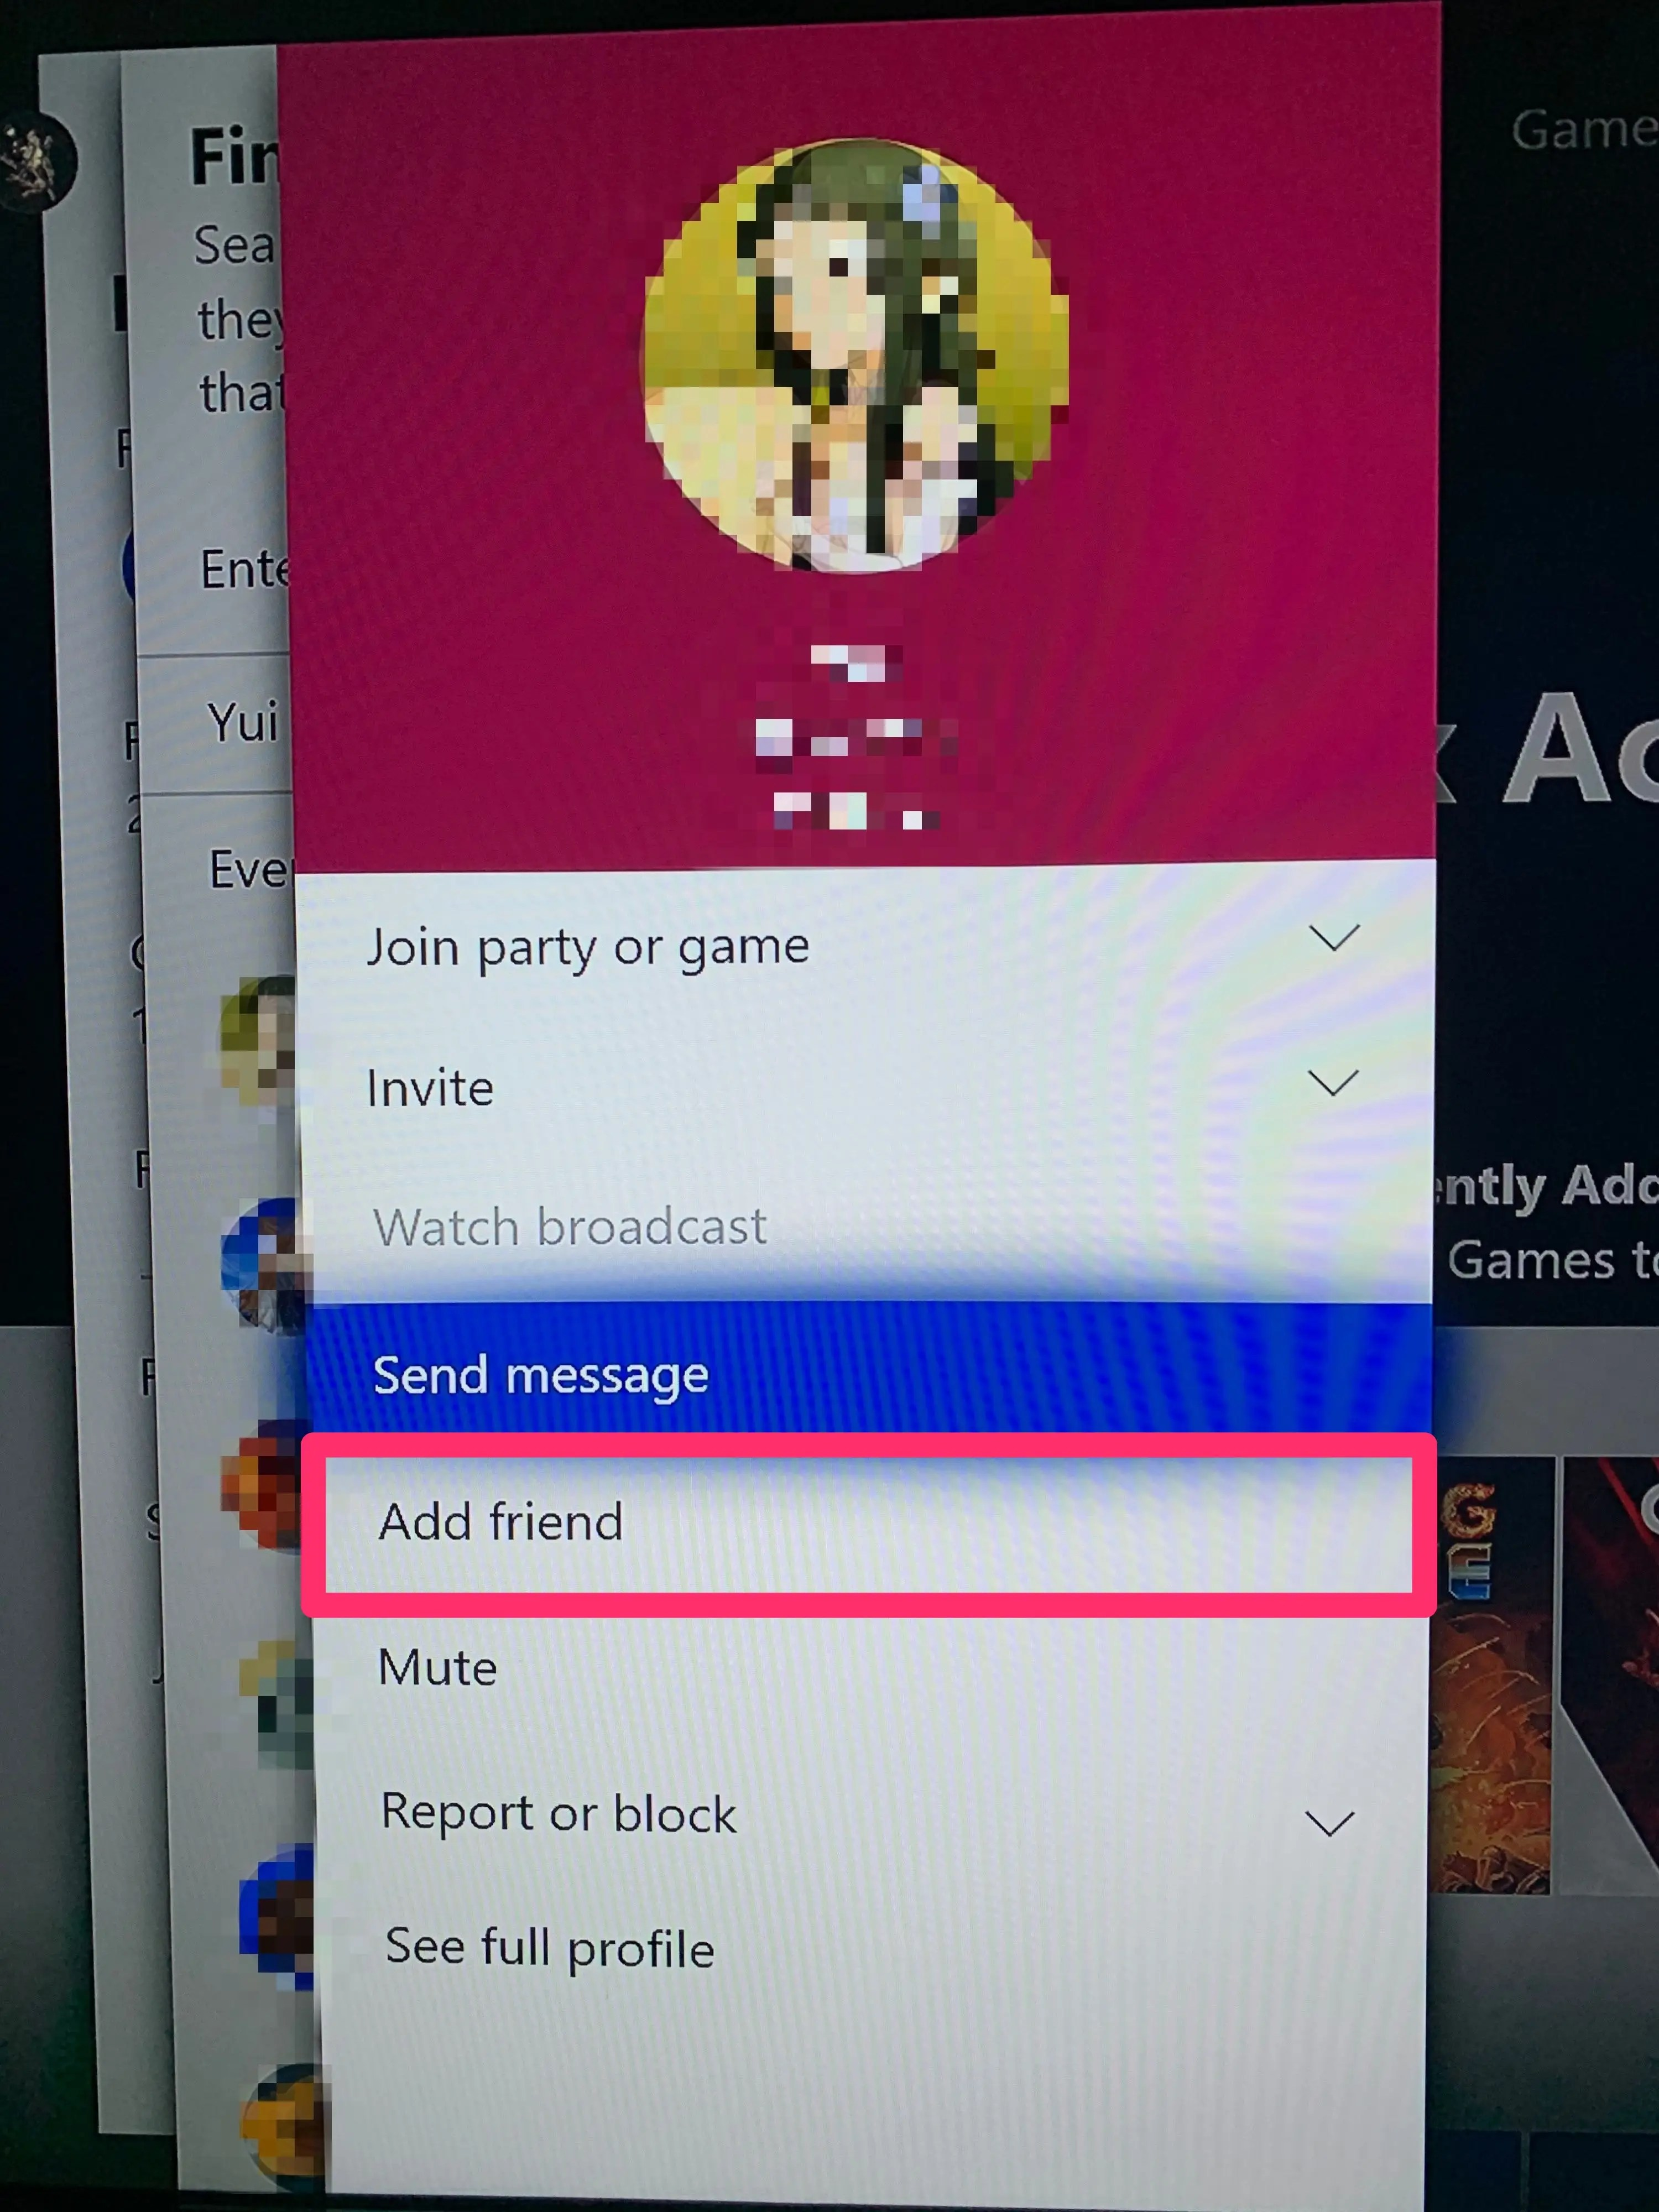 How To Pull Ip Address On Xbox : address, Friends, Different